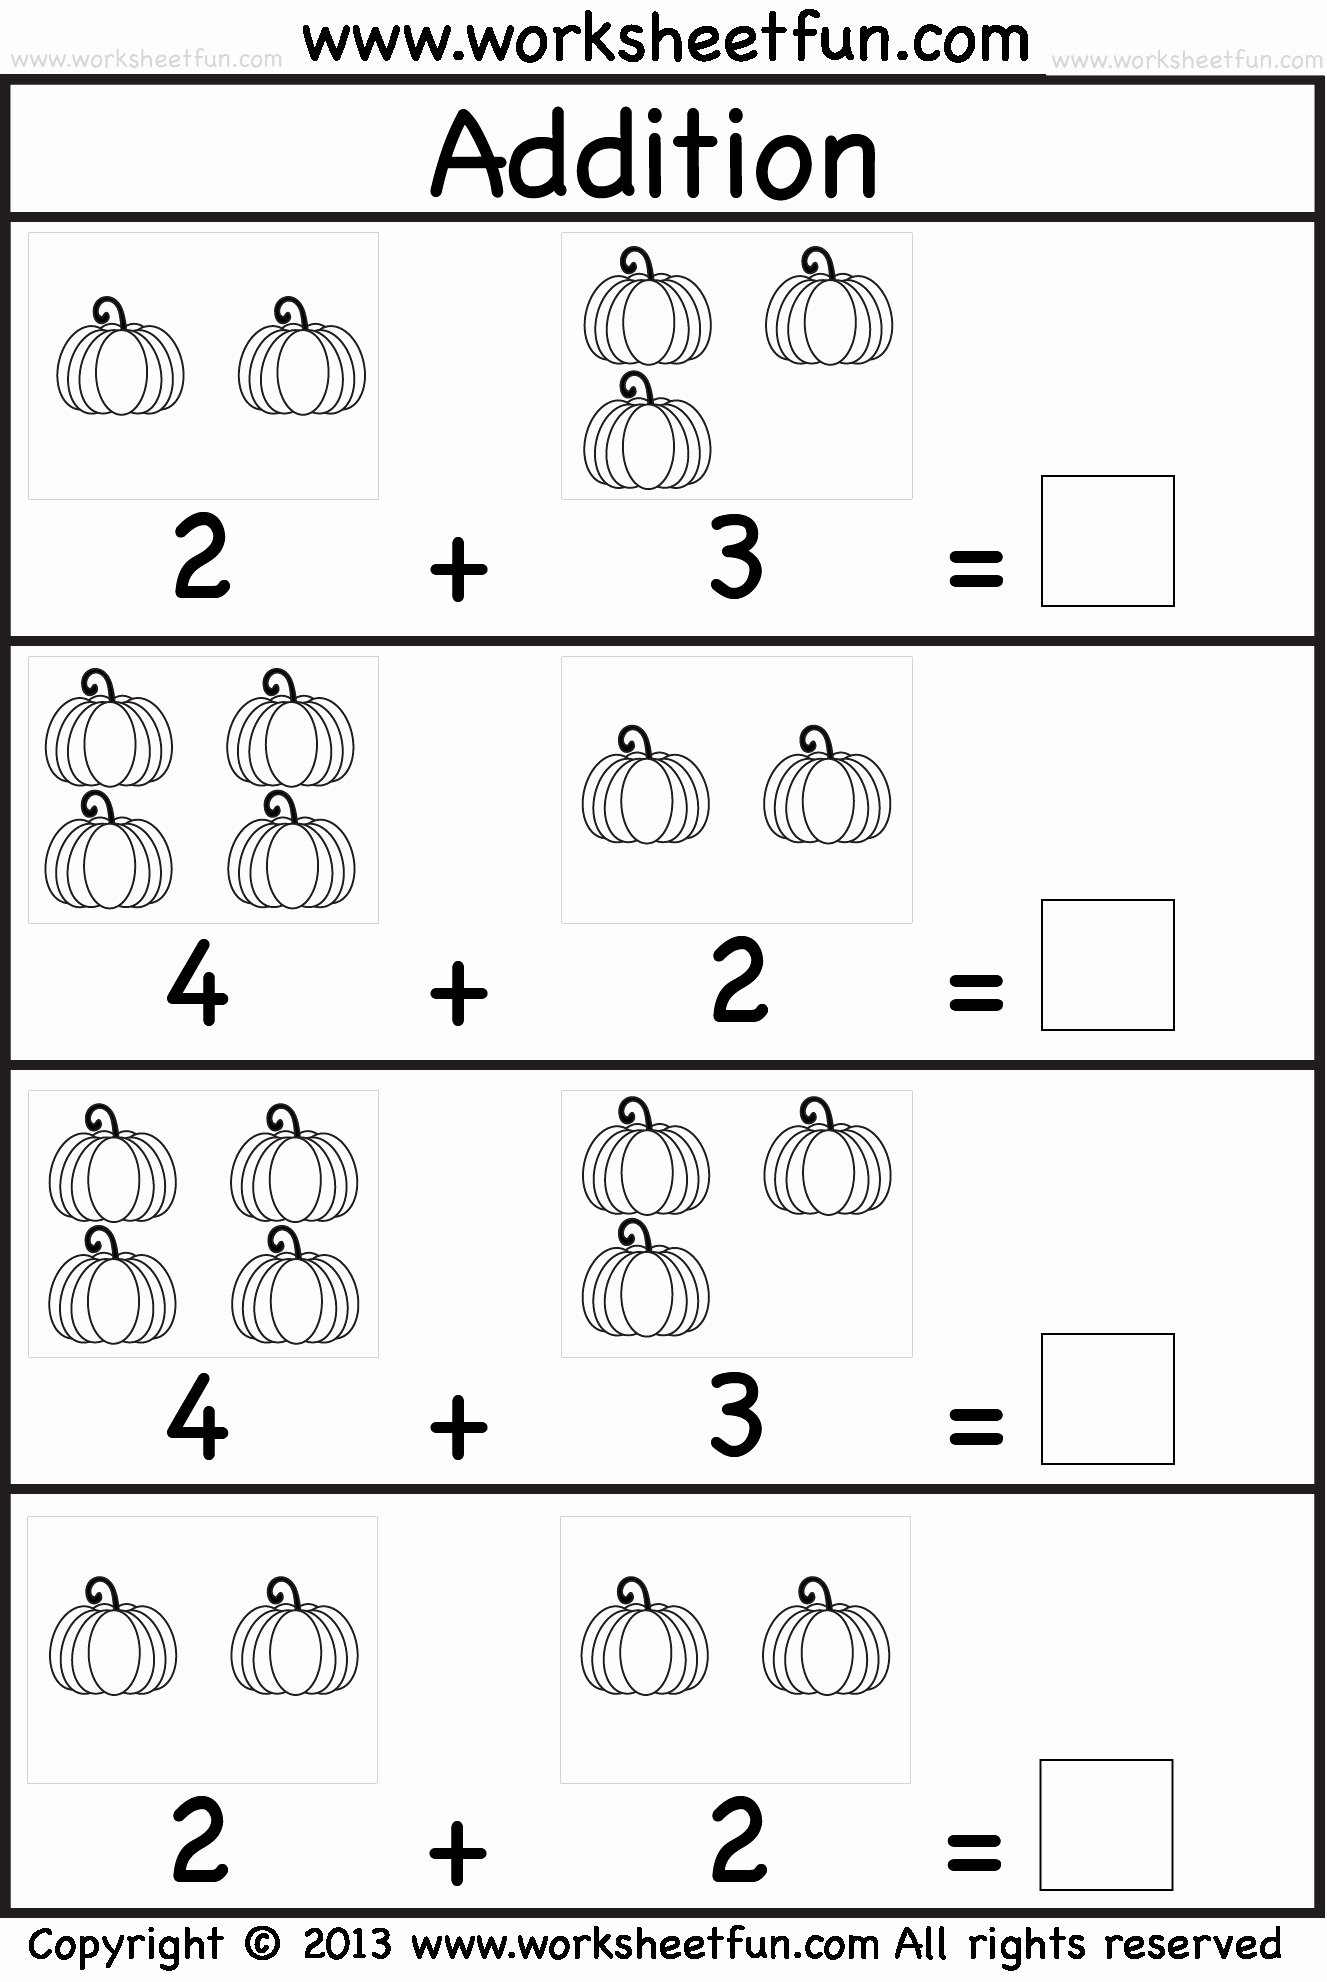 Worksheets for Preschoolers Math top Kindergarten Math Worksheets for Printable Preschool